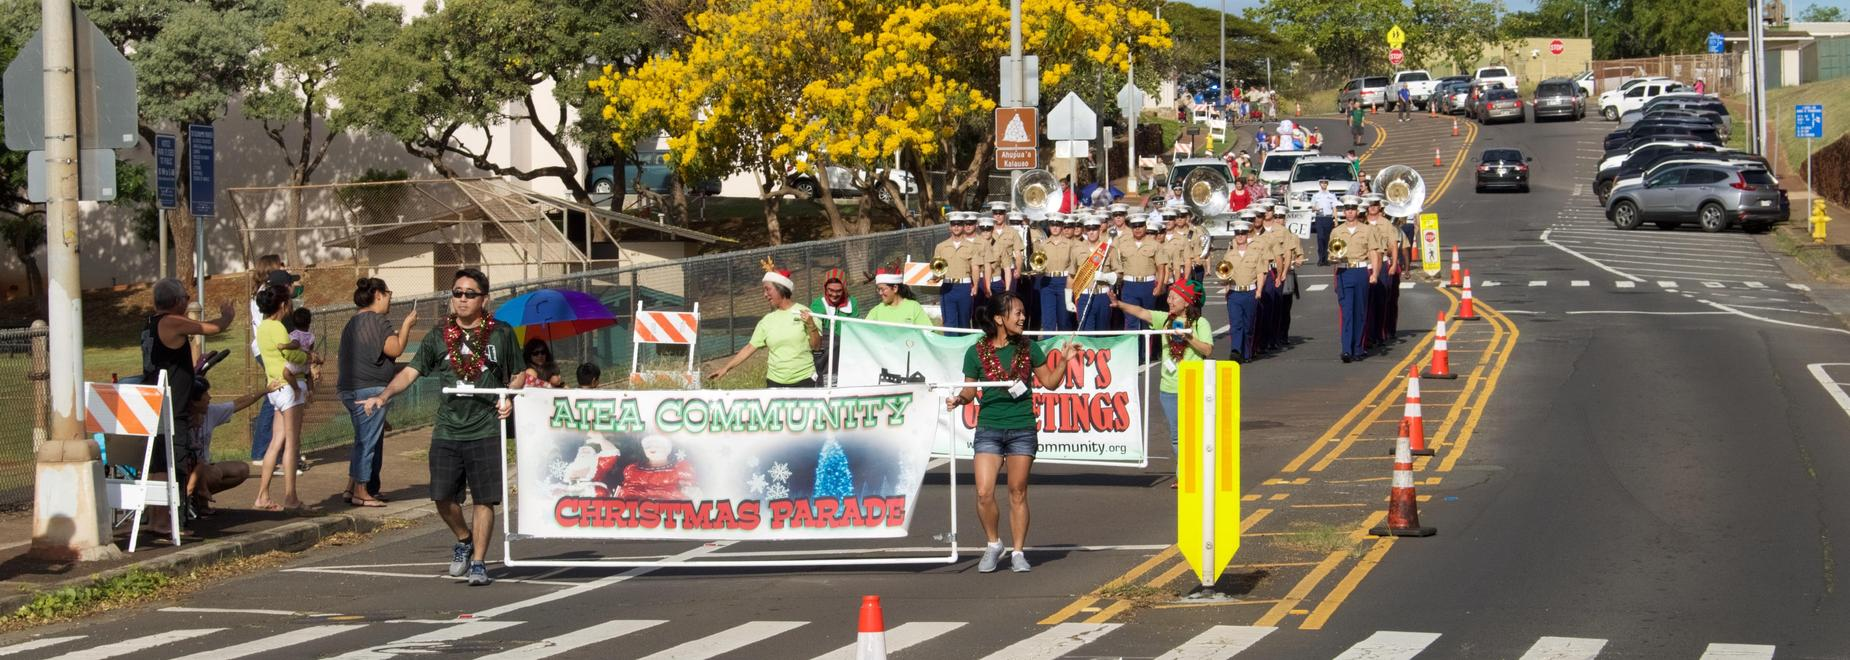 Aiea Community Christmas Parade